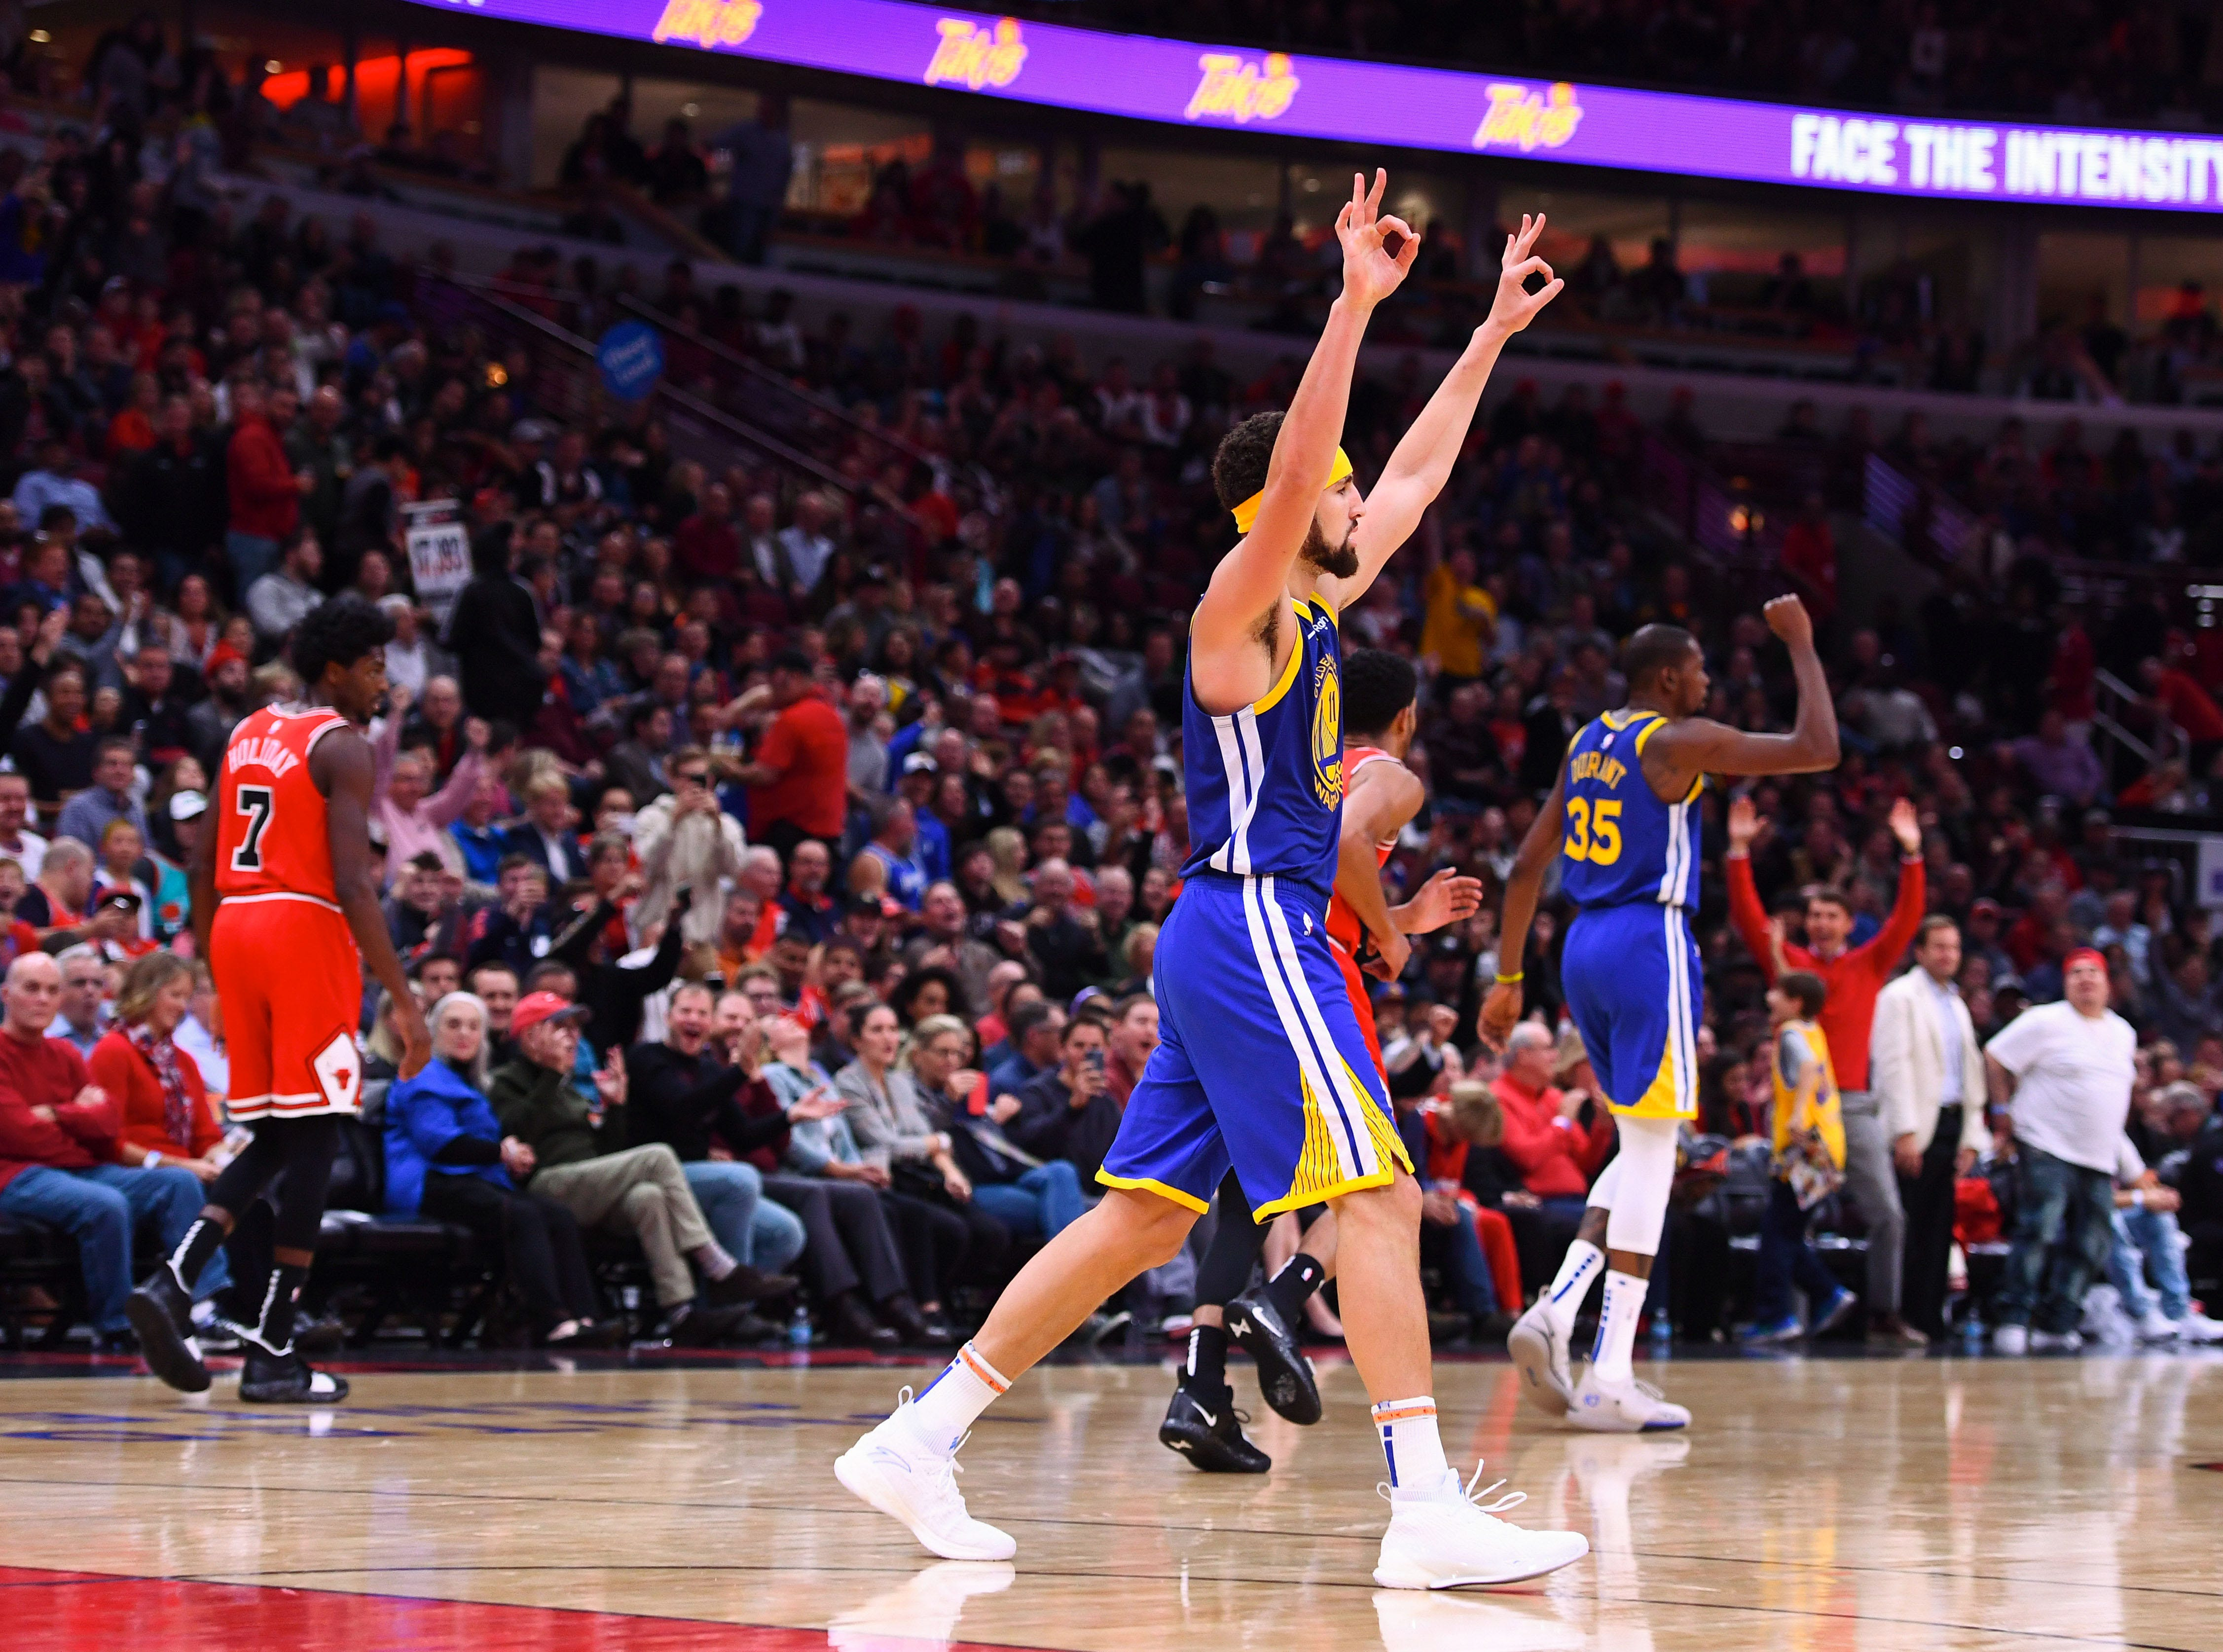 Oct. 29: Golden State Warriors guard Klay Thompson celebrates one of his record-breaking 14 3-pointers against the Chicago Bulls.